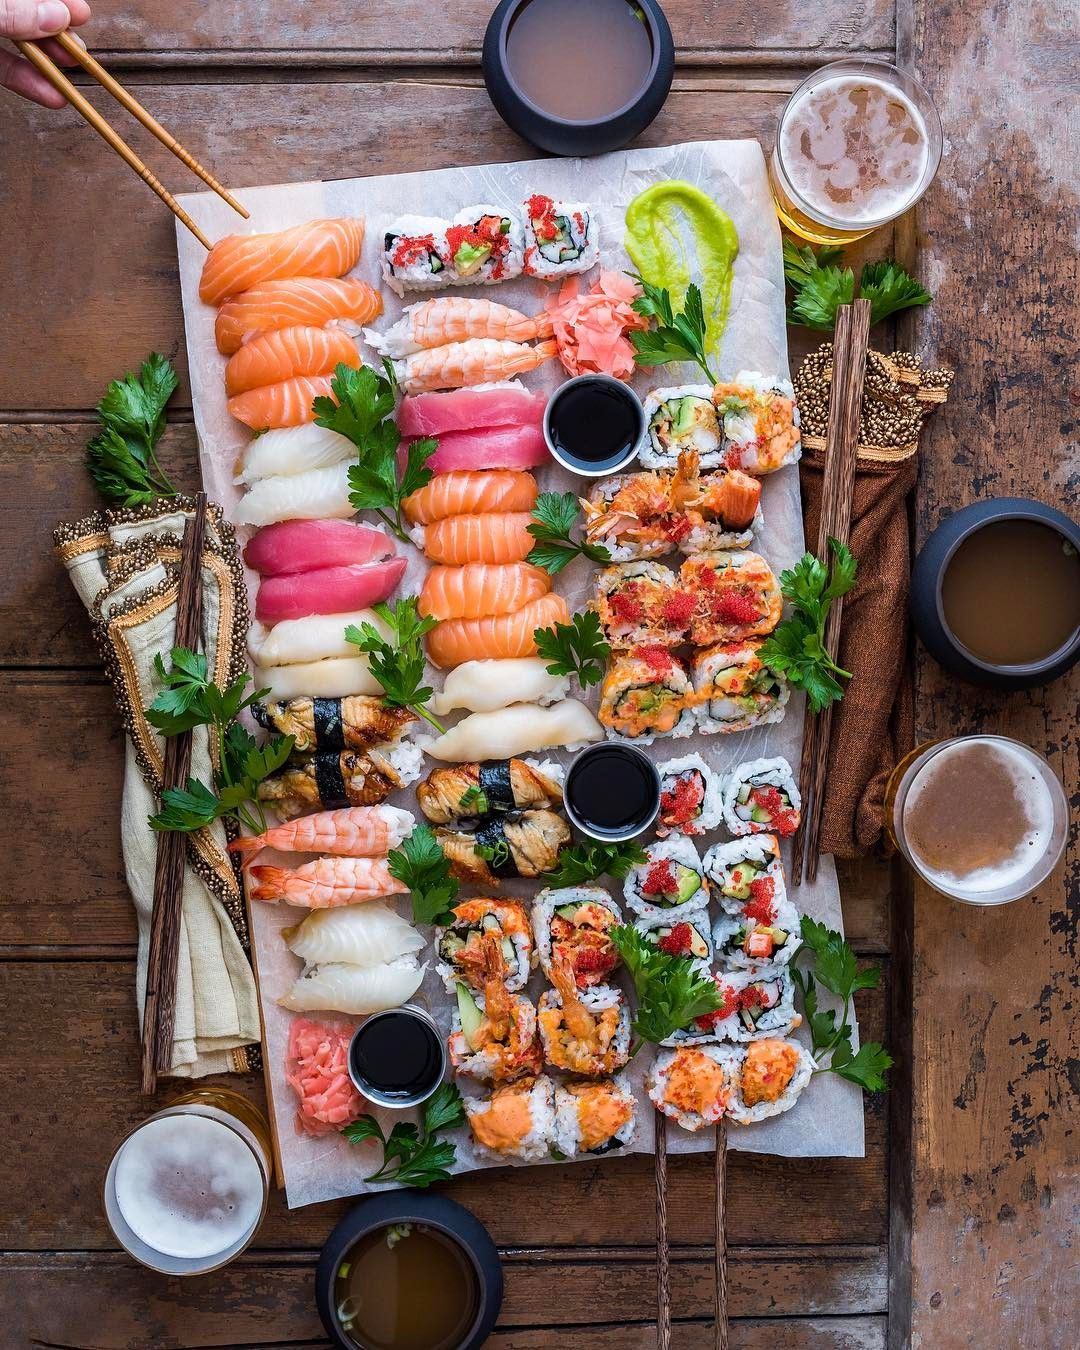 Love The Composition Of This Sushi Pic Looks Like A Very Inviting